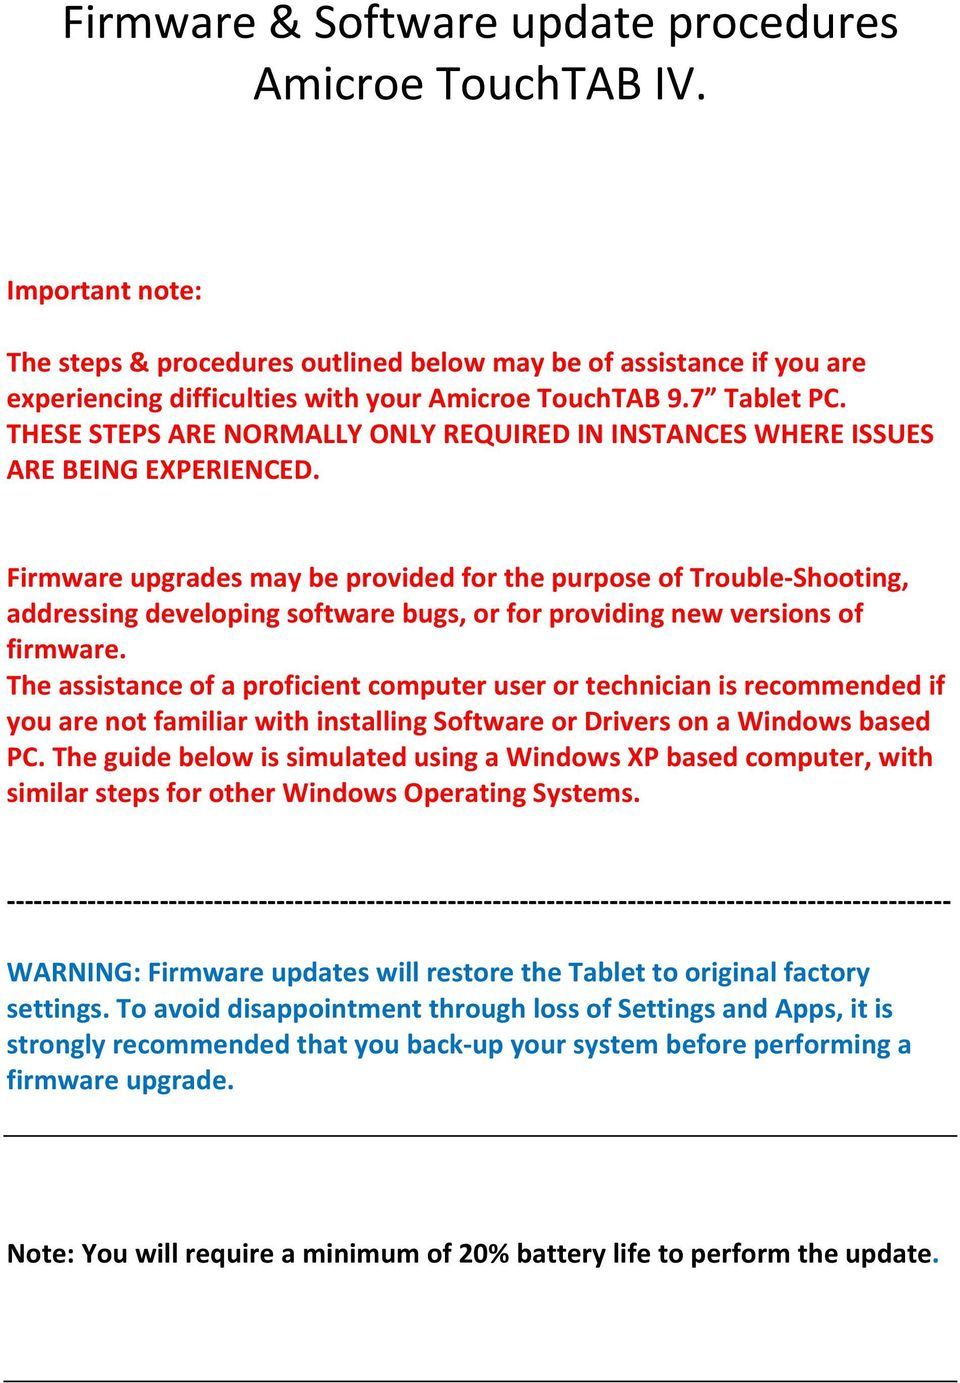 Firmware upgrades may be provided for the purpose of Trouble Shooting, addressing developing software bugs, or for providing new versions of firmware.